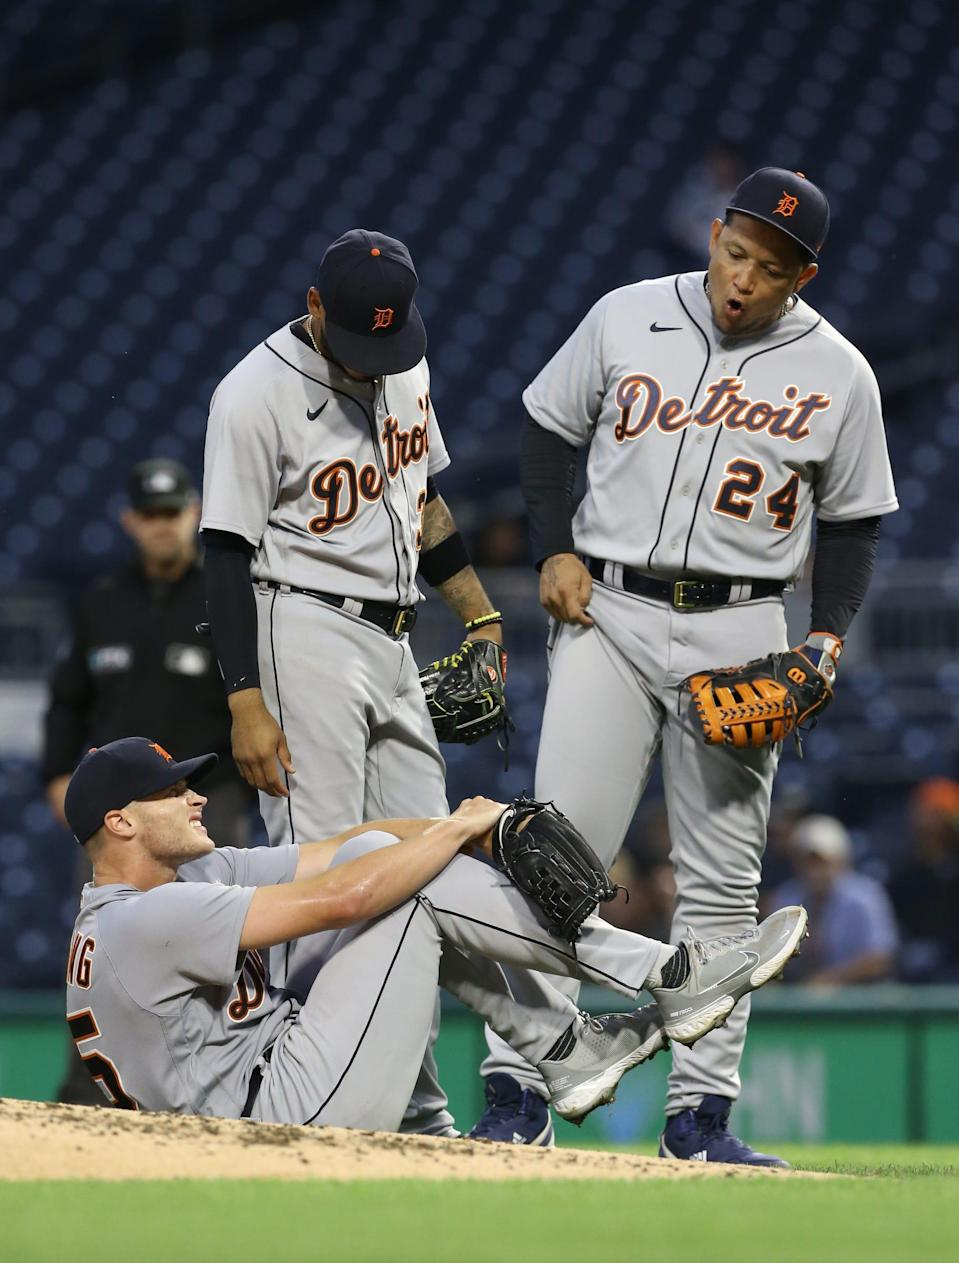 Detroit Tigers starting pitcher Matt Manning (25) reacts after being struck by a line drive hit by Pittsburgh Pirates first baseman Colin Moran (not pictured) as shortstop Harold Castro (30) and first baseman Miguel Cabrera (24) look on during the third inning at PNC Park in Pittsburgh on Wednesday, Sept. 8, 2021.